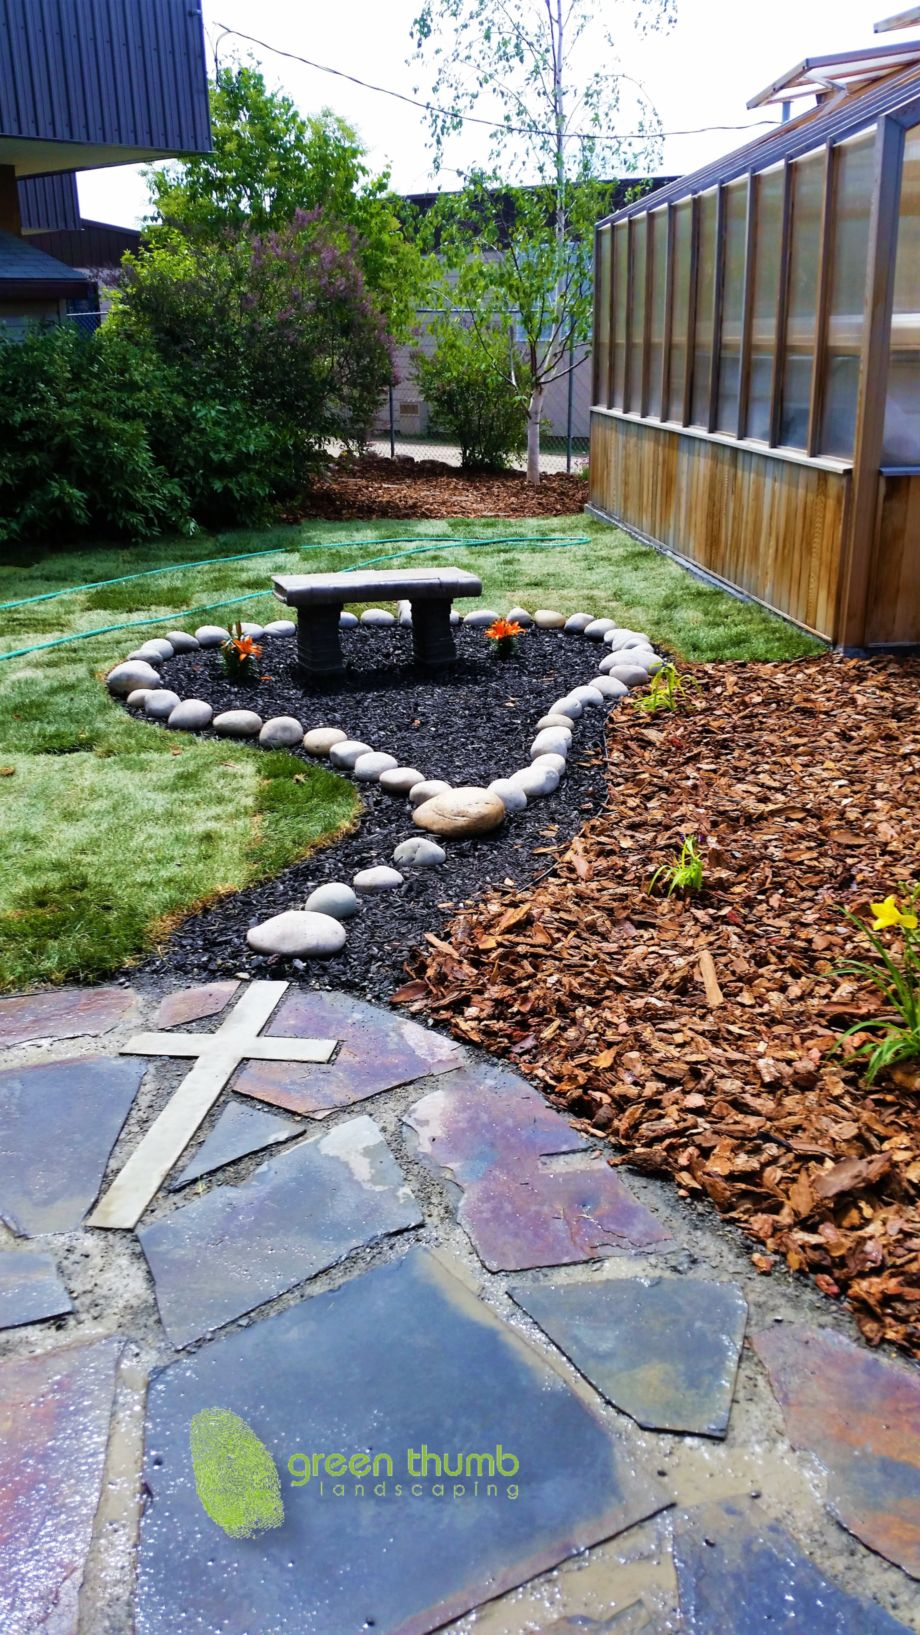 Cute and simple school garden design ideas 16 - ROUNDECOR